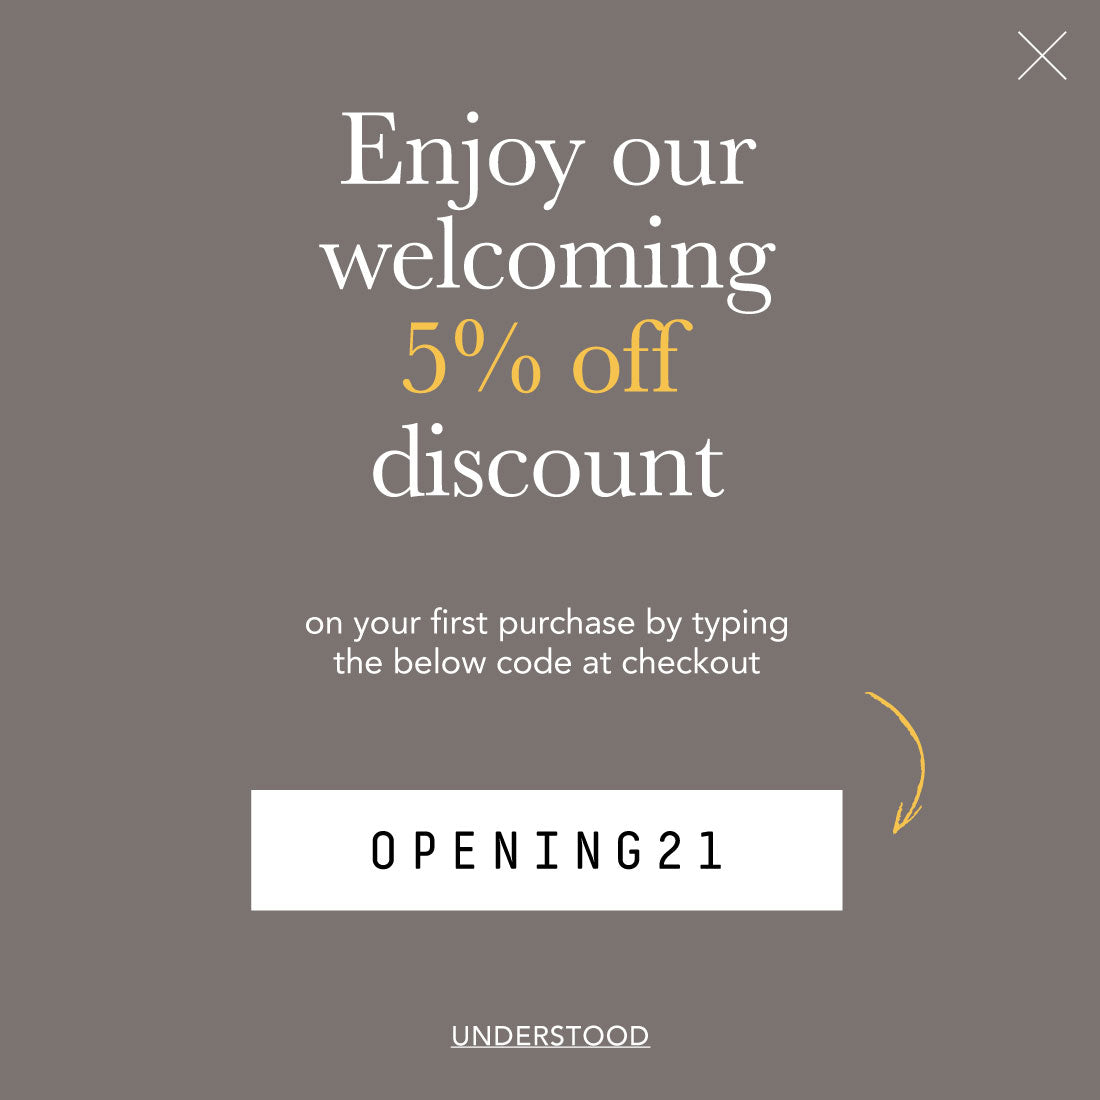 Enjoy our welcoming 5% off discount